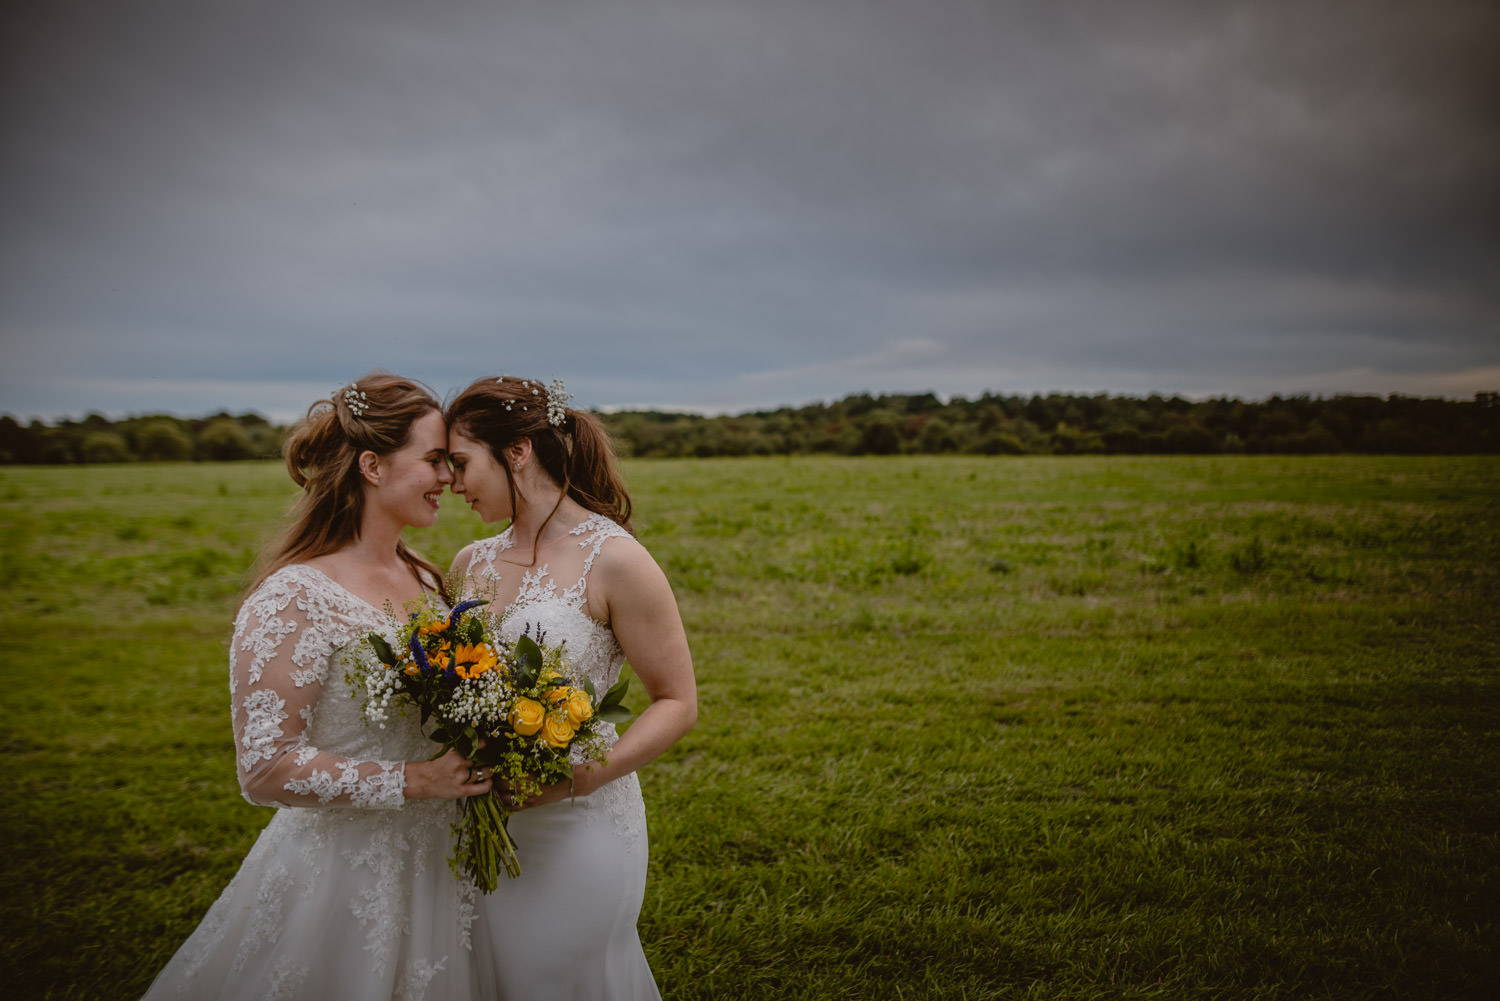 Romantic Same-sex Wedding Photos